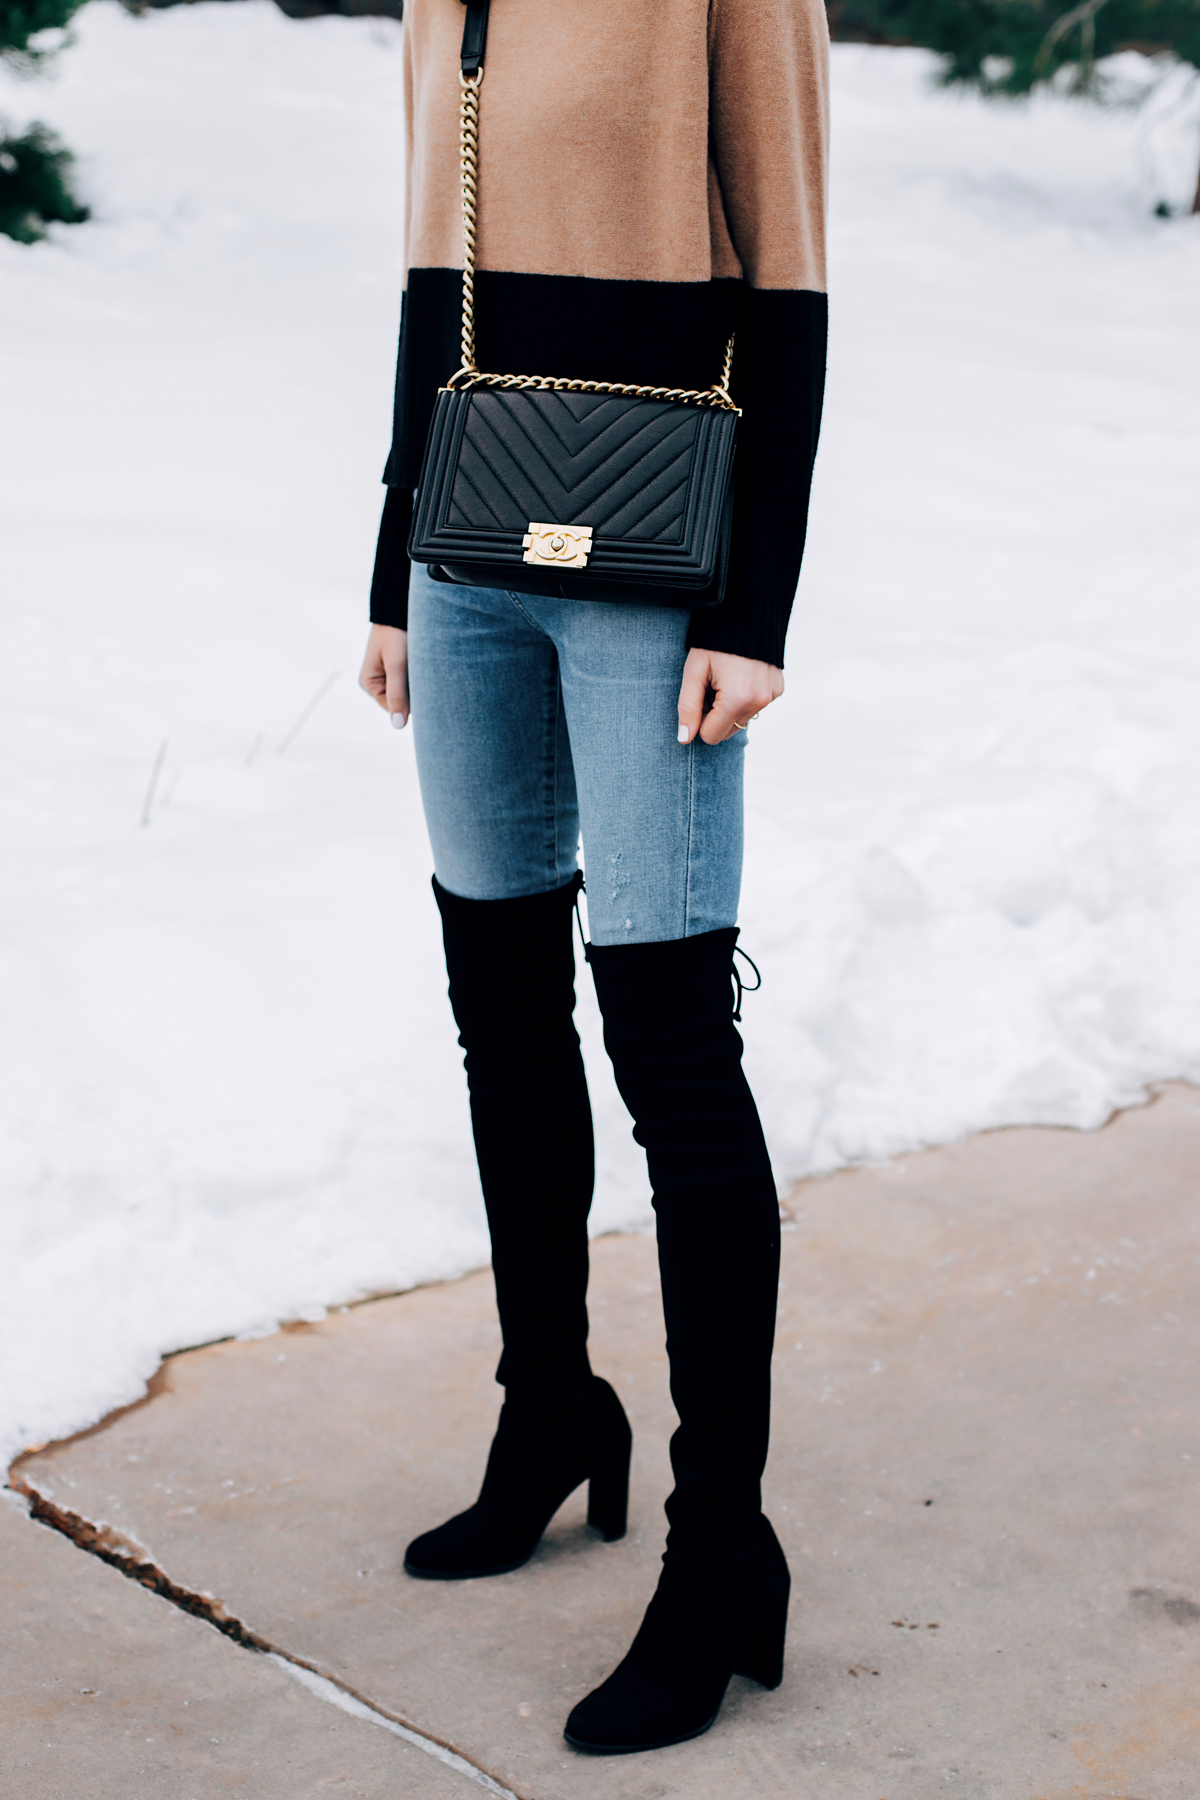 Woman Wearing Tan Black Color Block Sweater Denim Skinny Jeans Stuart Weitzman Black Over the Knee Boots Chanel Black Boy Handbag Fashion Jackson San Diego Fashion Blogger Winter Style